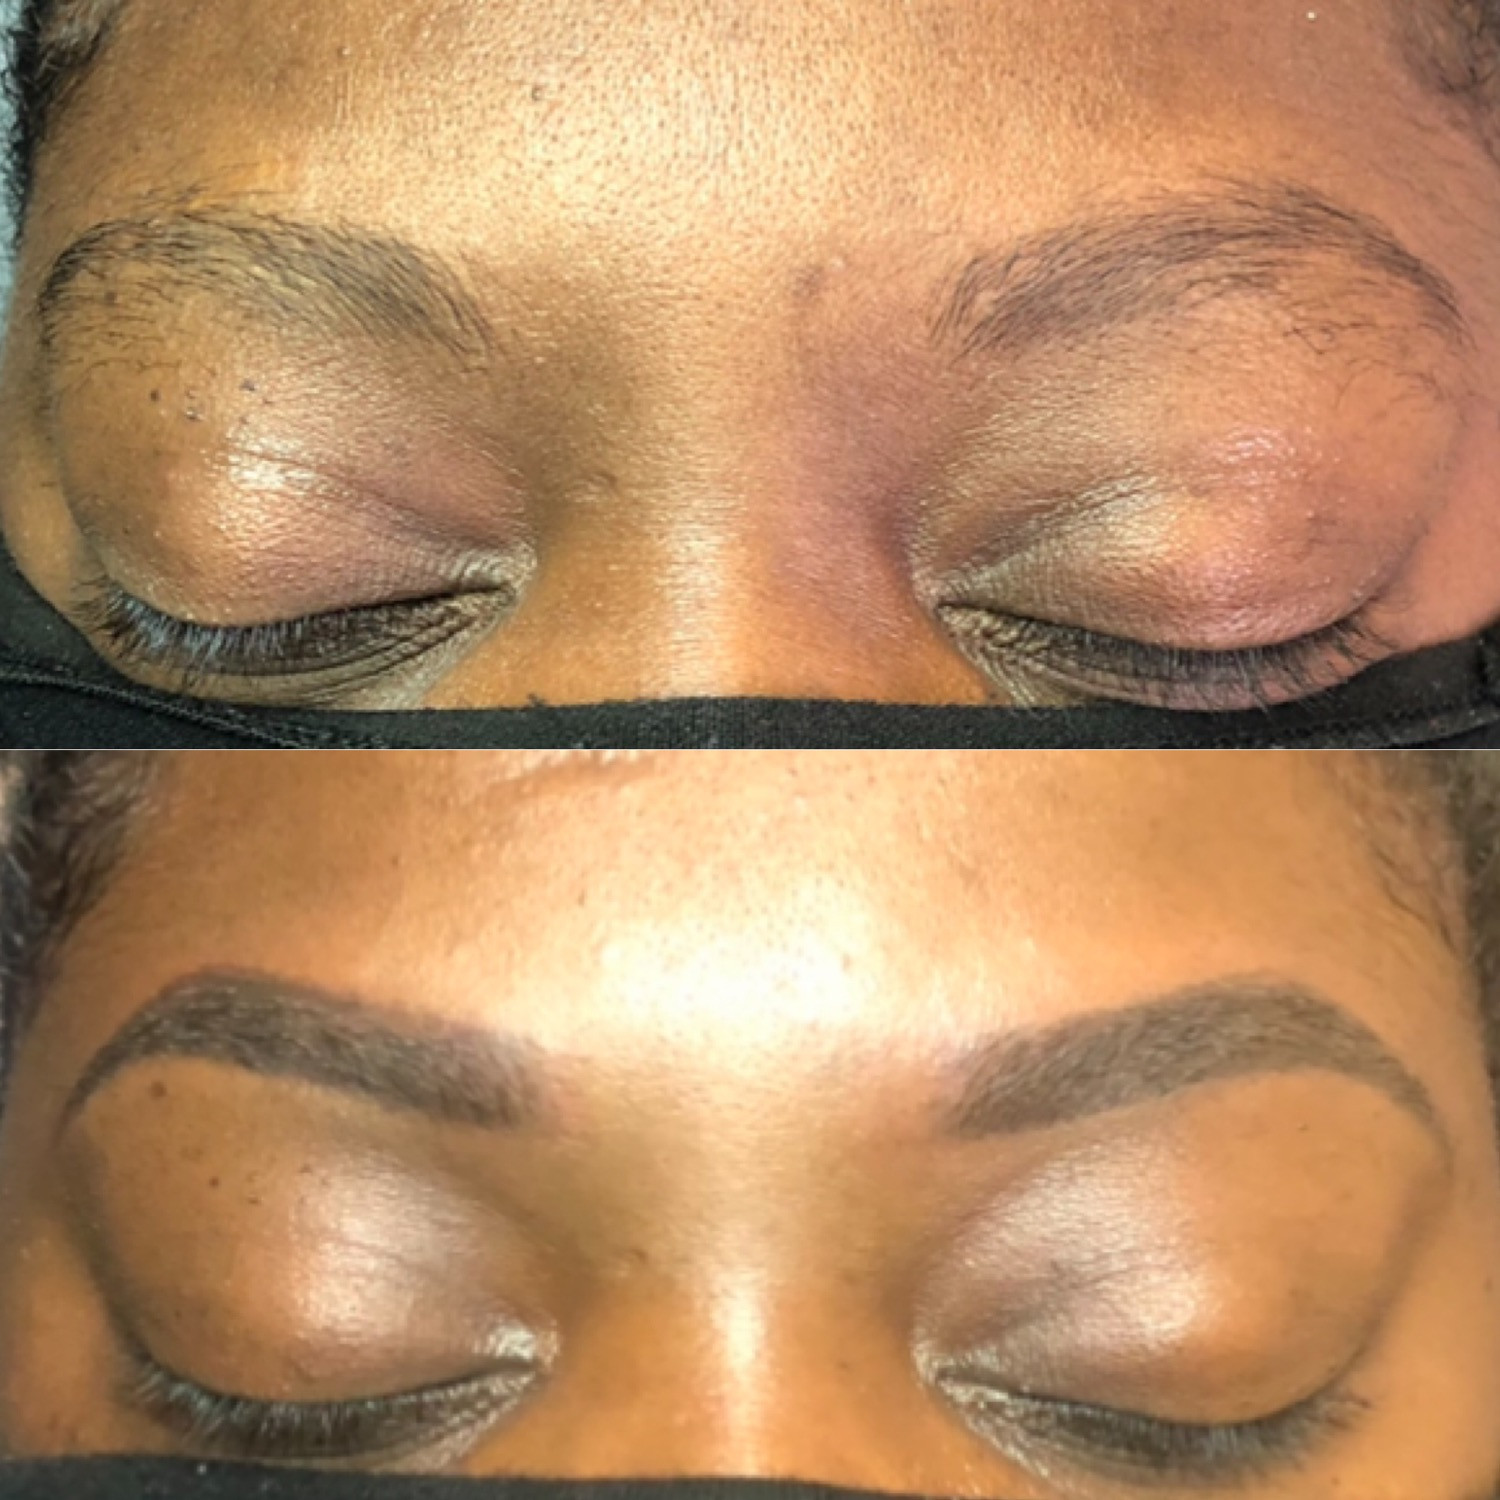 6 wk Microblading Touch Up (1st)